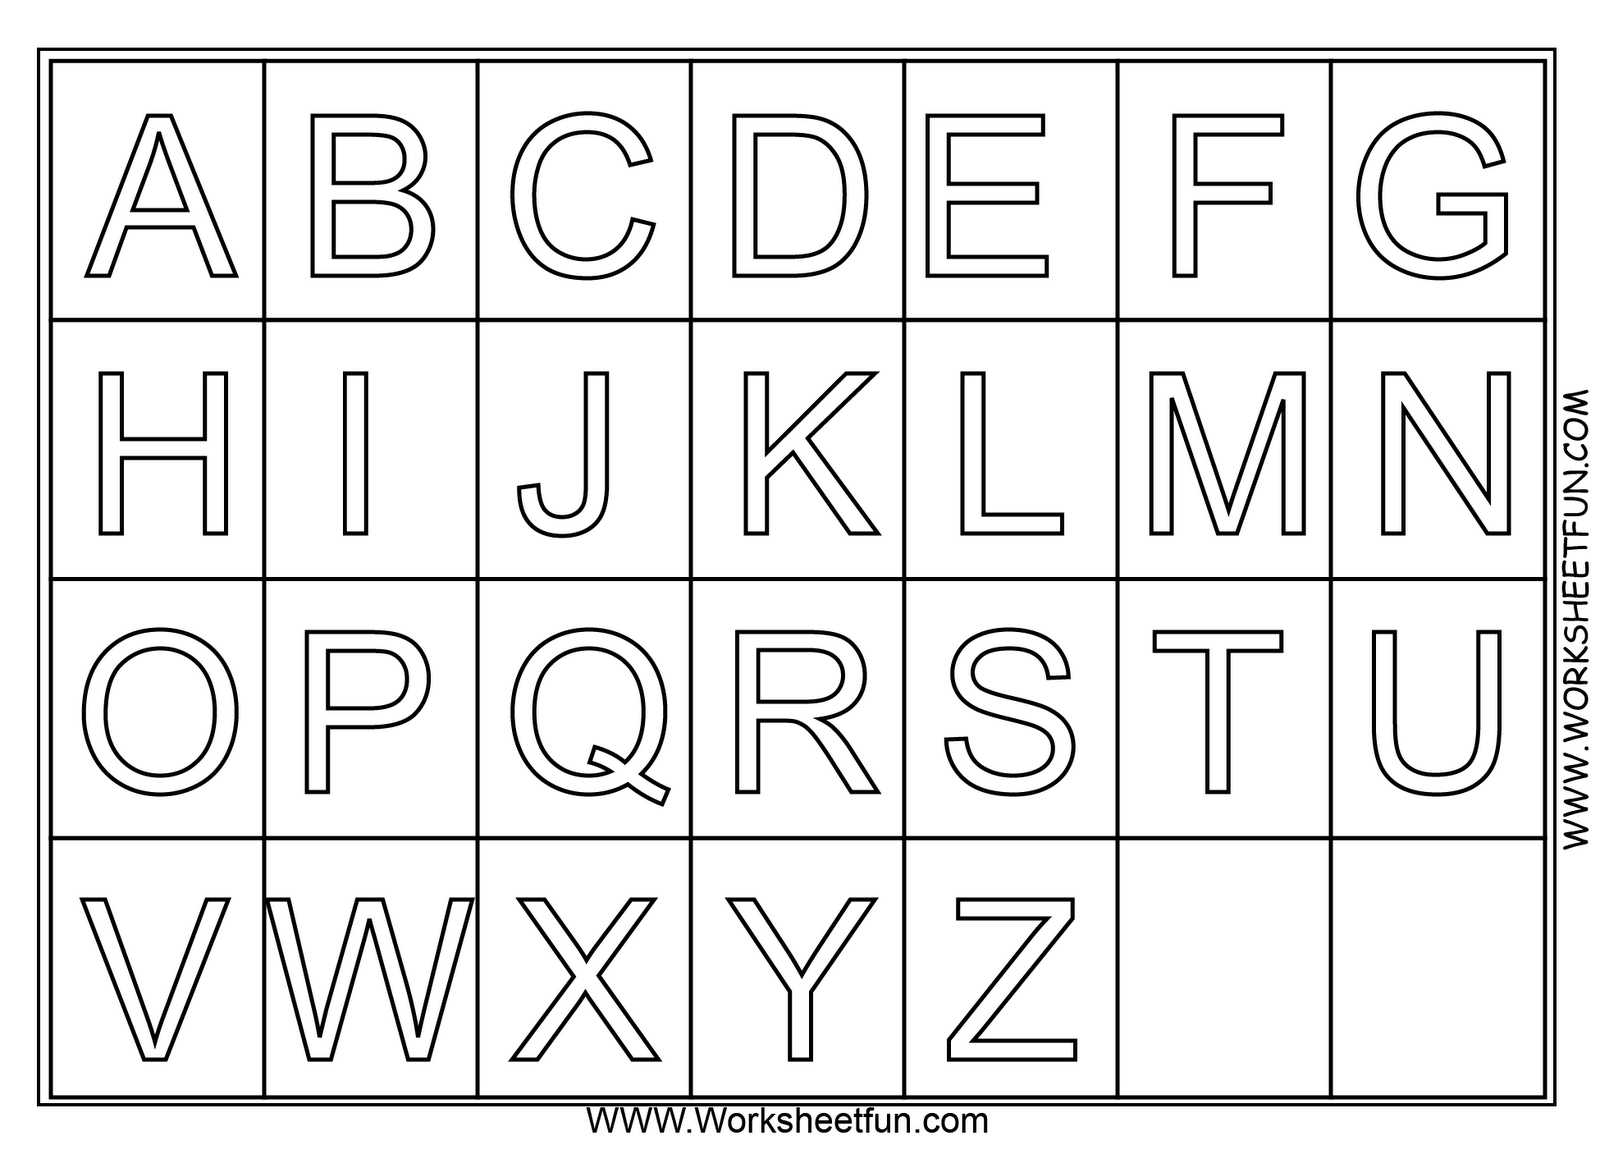 A Z Alphabet Coloring Pages Download And Print For Free   Pre K - Printable Alphabet Letters Free Download